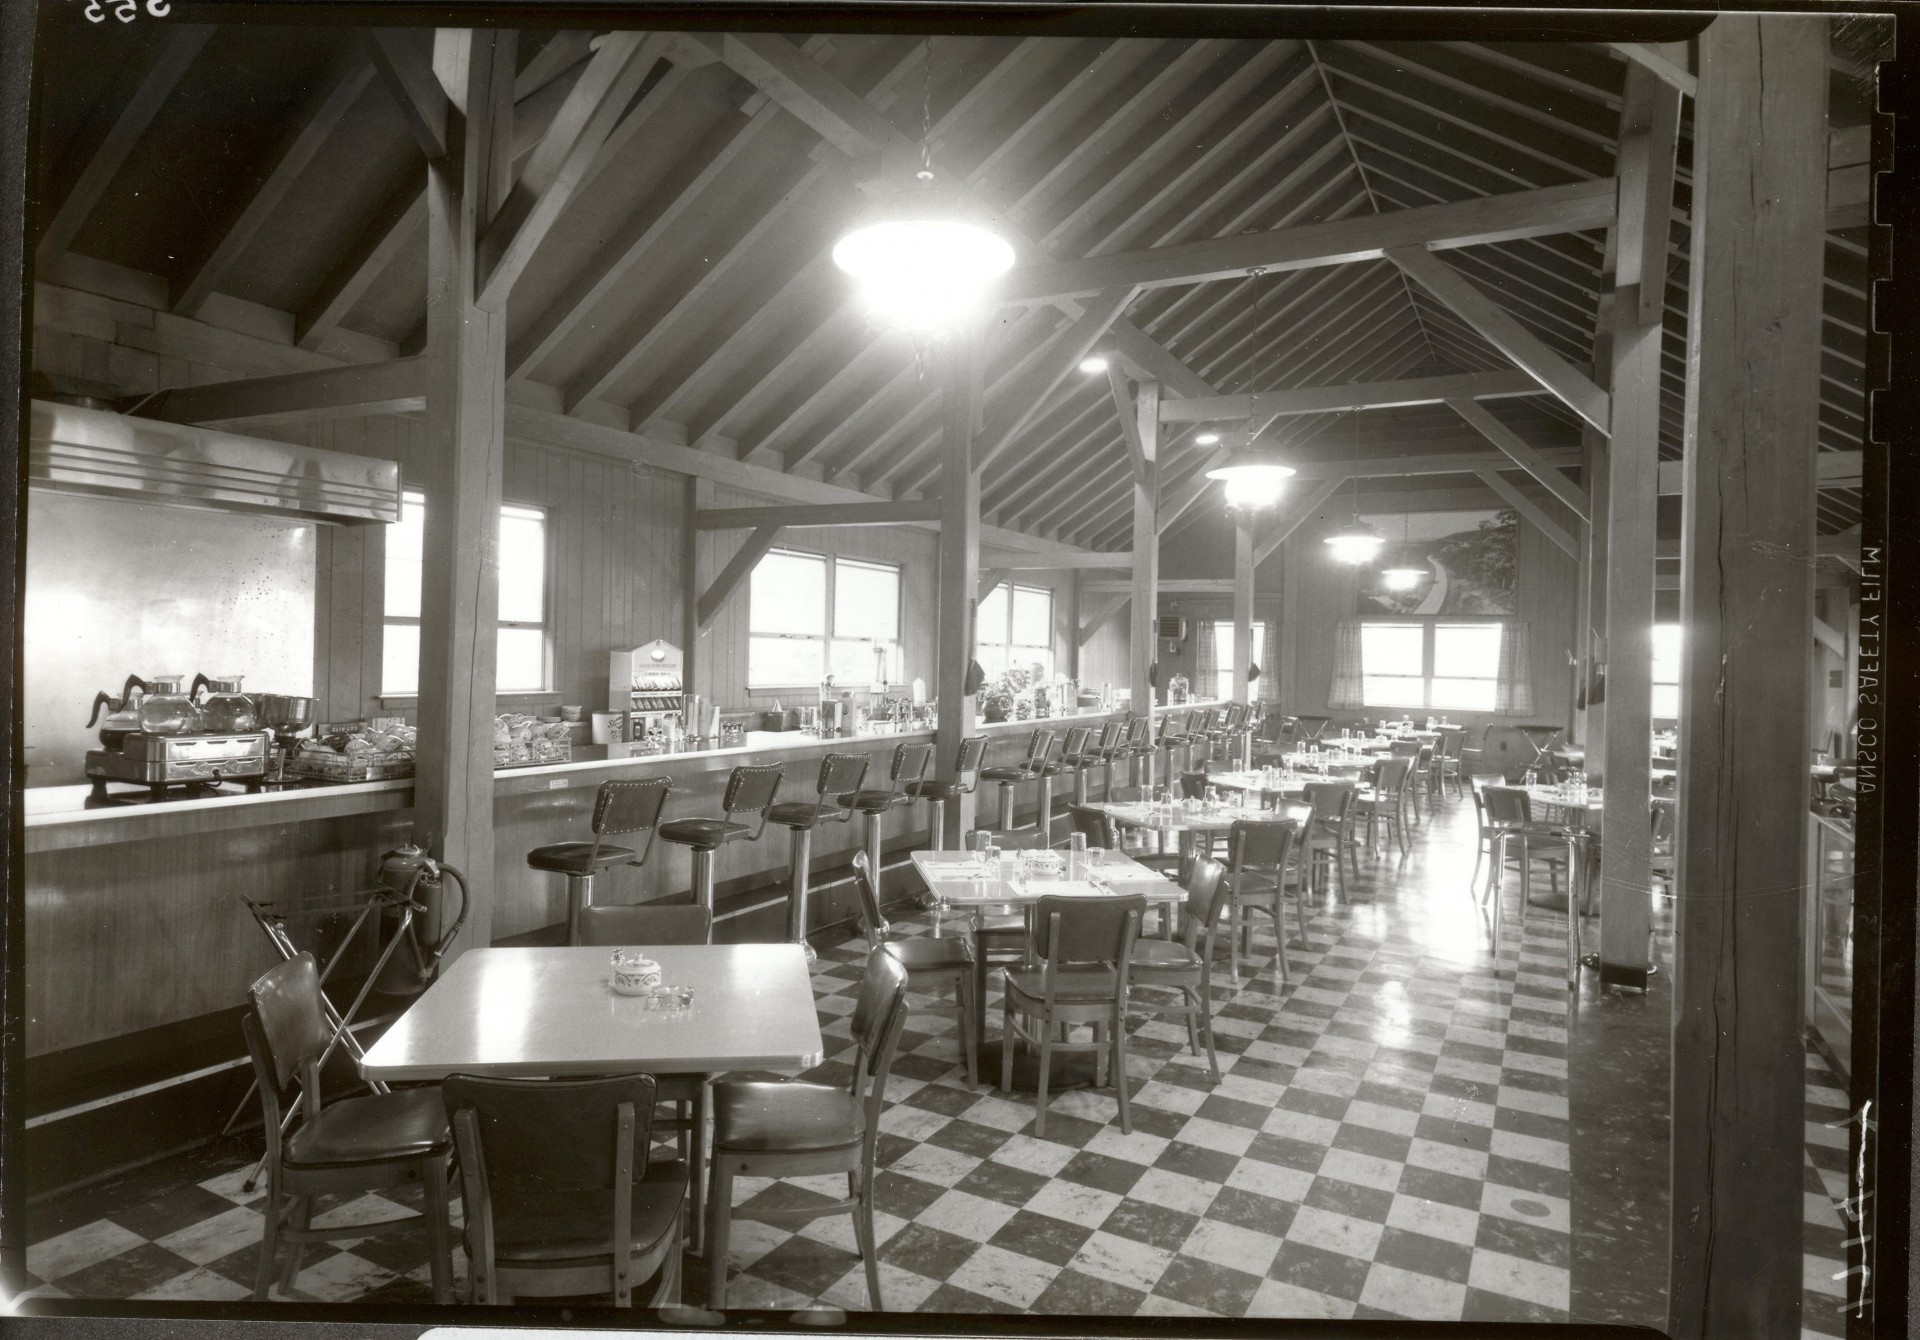 Bluffs Restaurant and Coffee Shop  shown in 1952